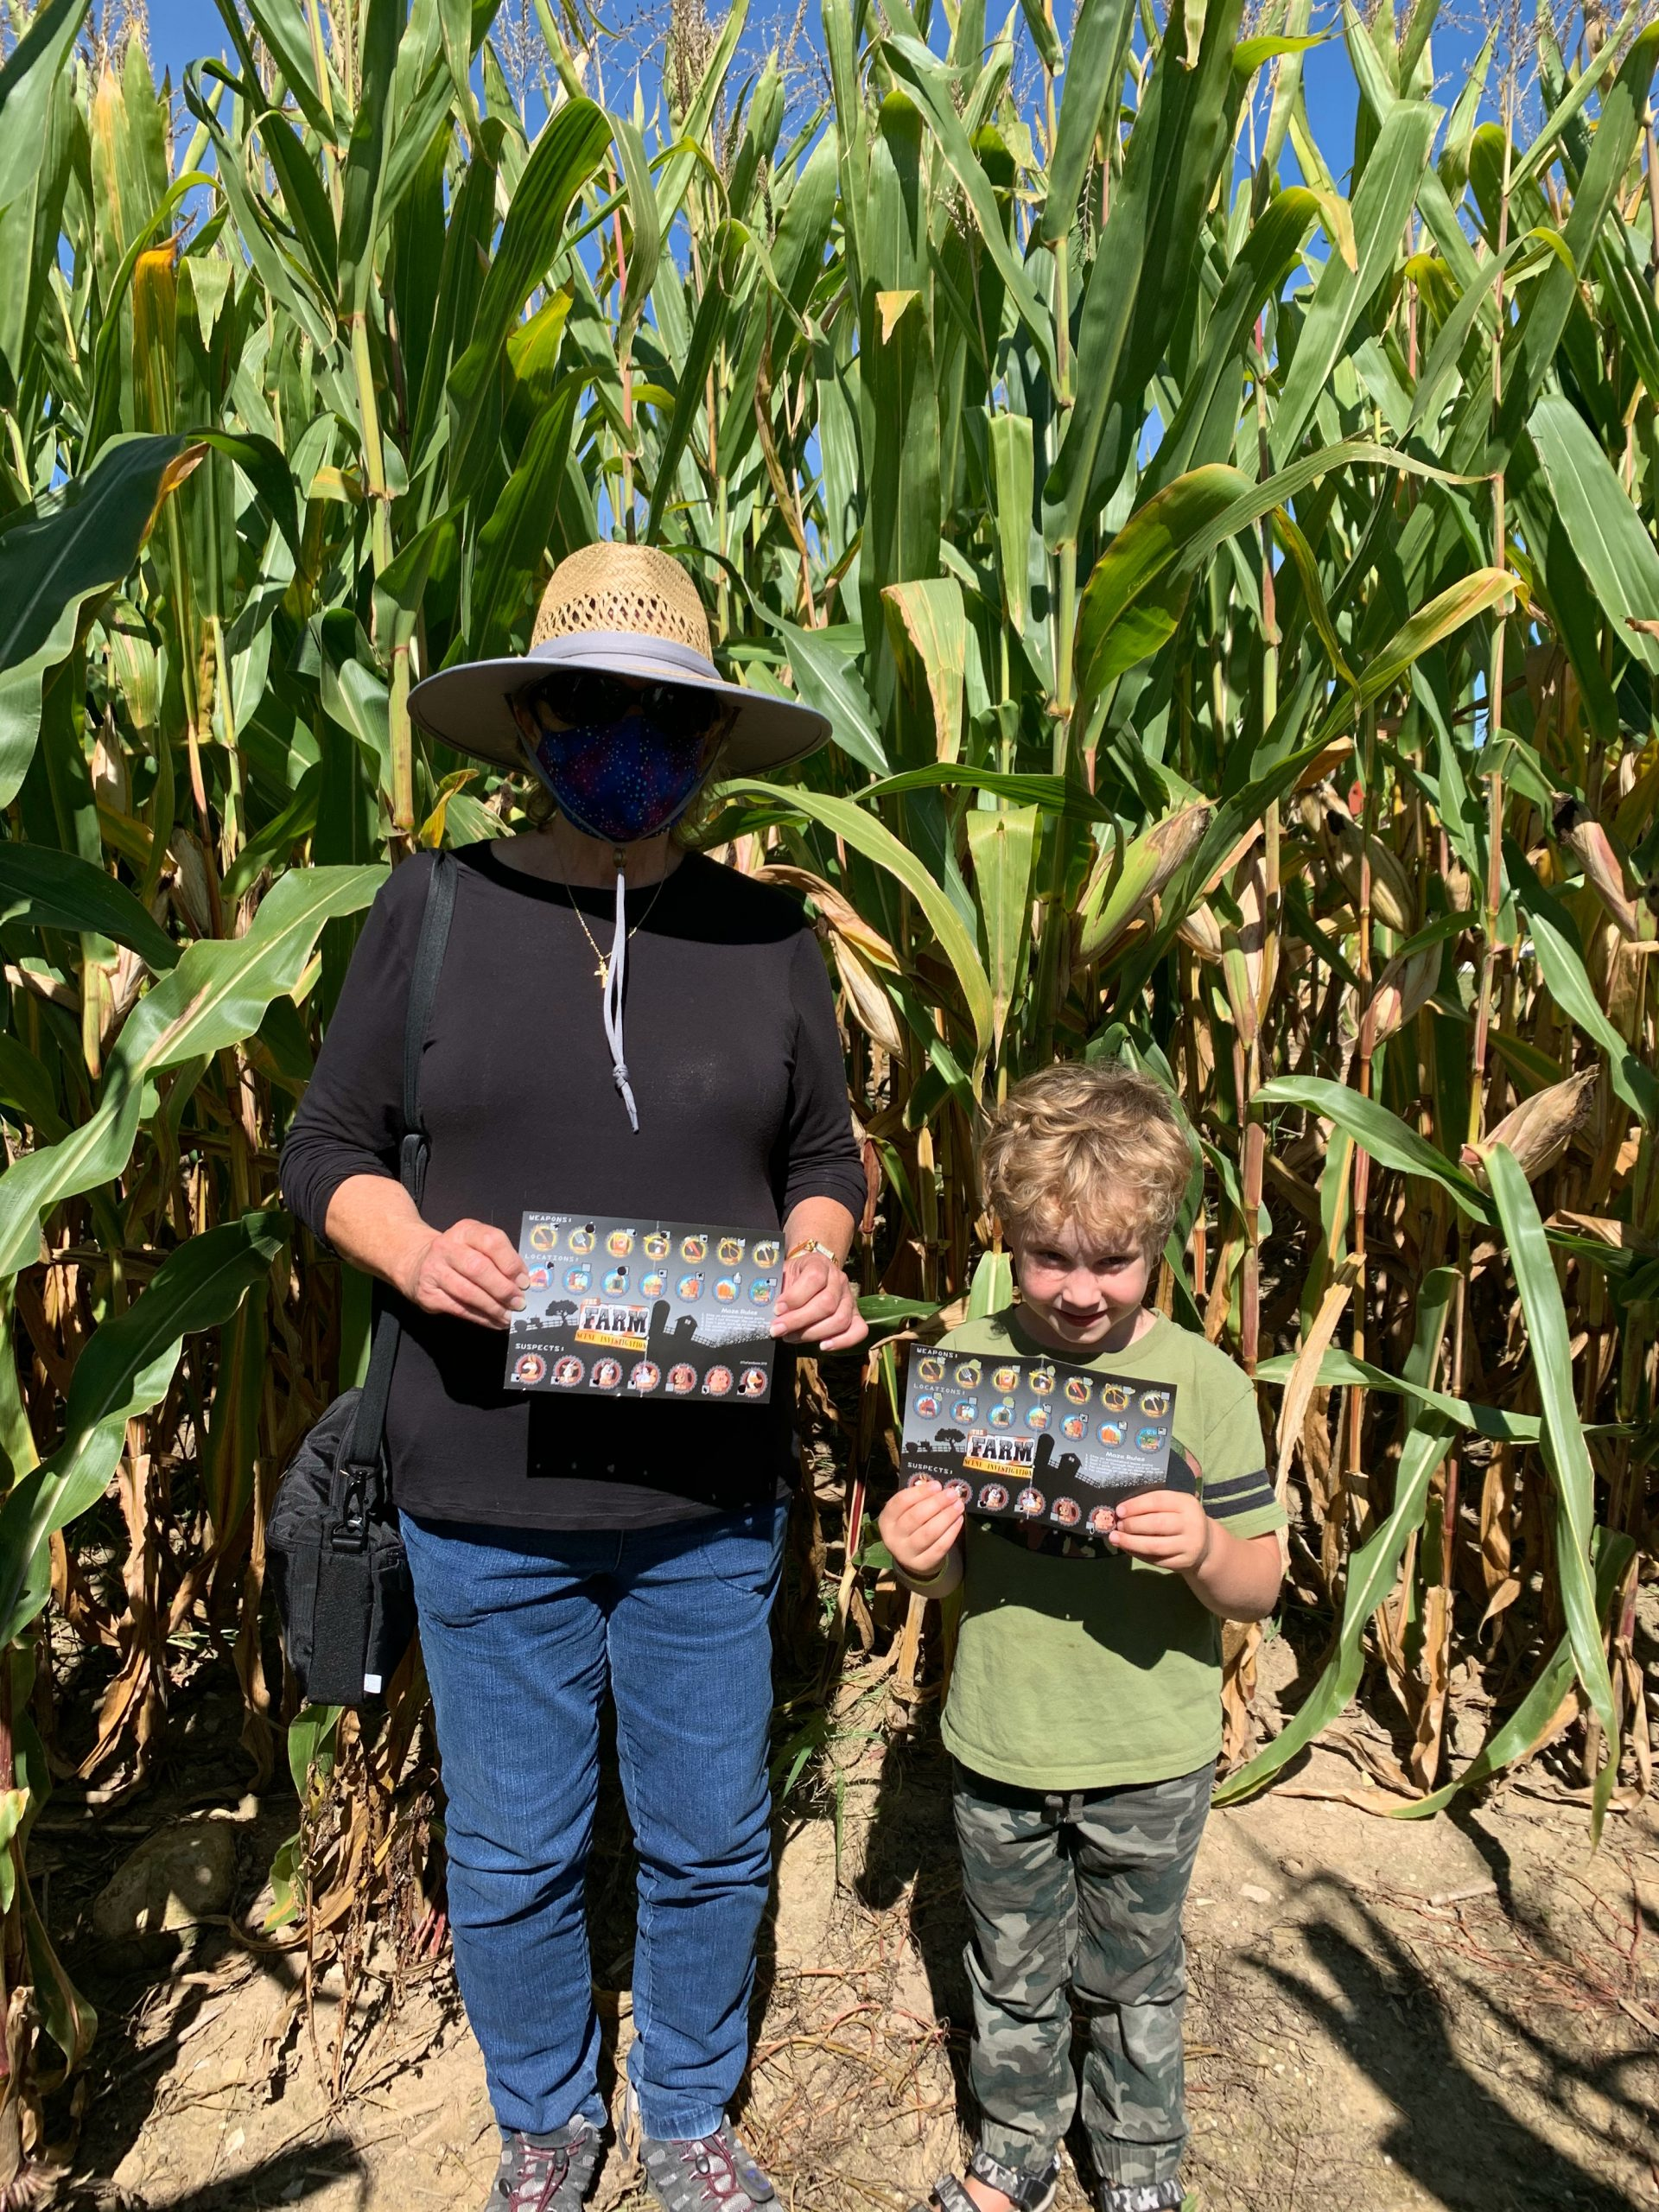 Completed punch card at Corn Maze at Basse's